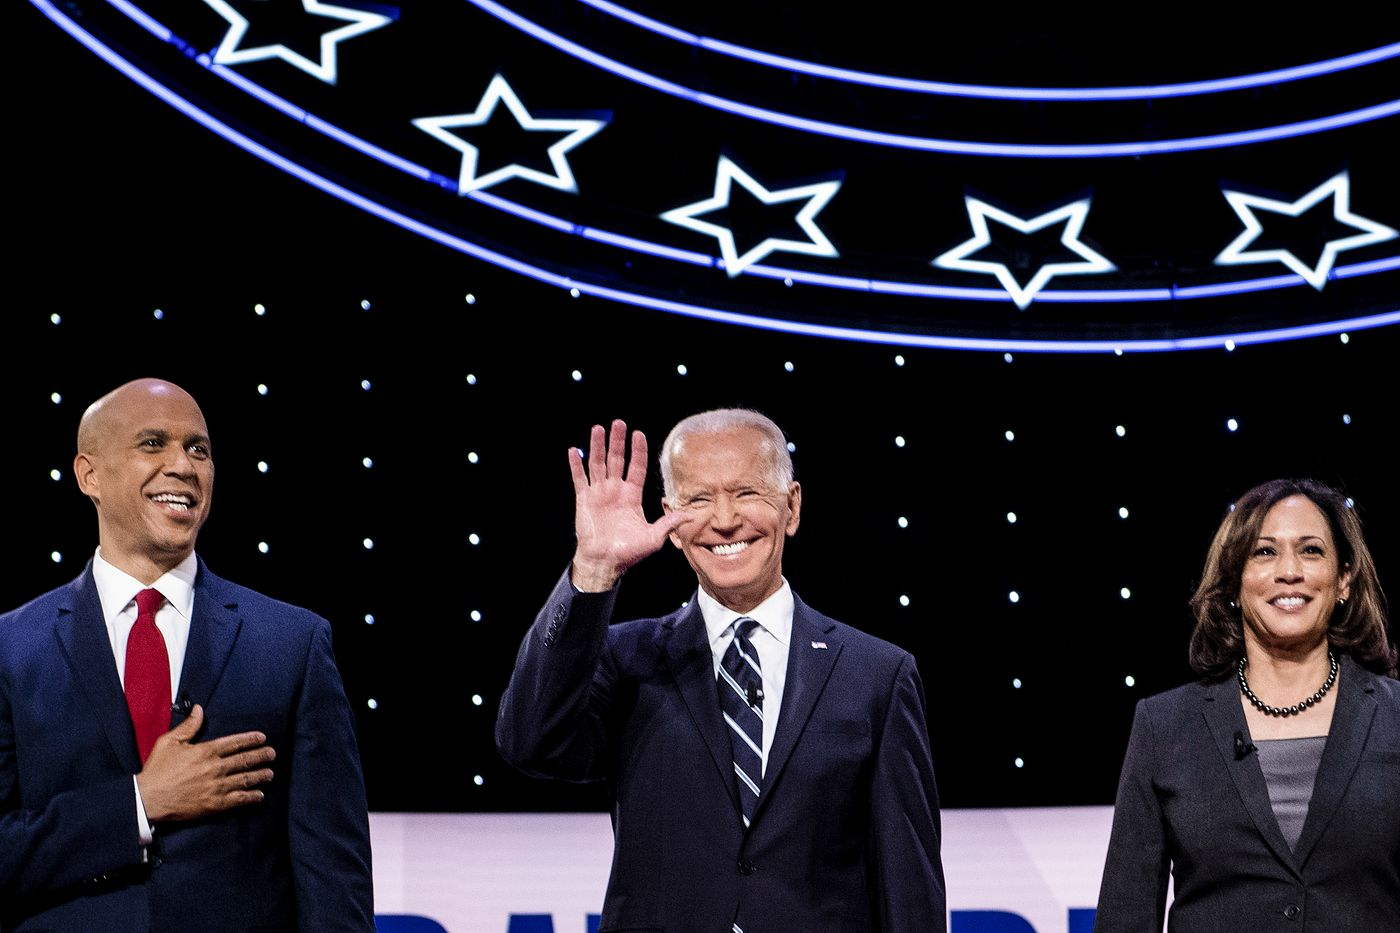 Democrats Are Spotlighting Big >> Democratic Debate July 2019 4 Winners And 3 Losers Vox